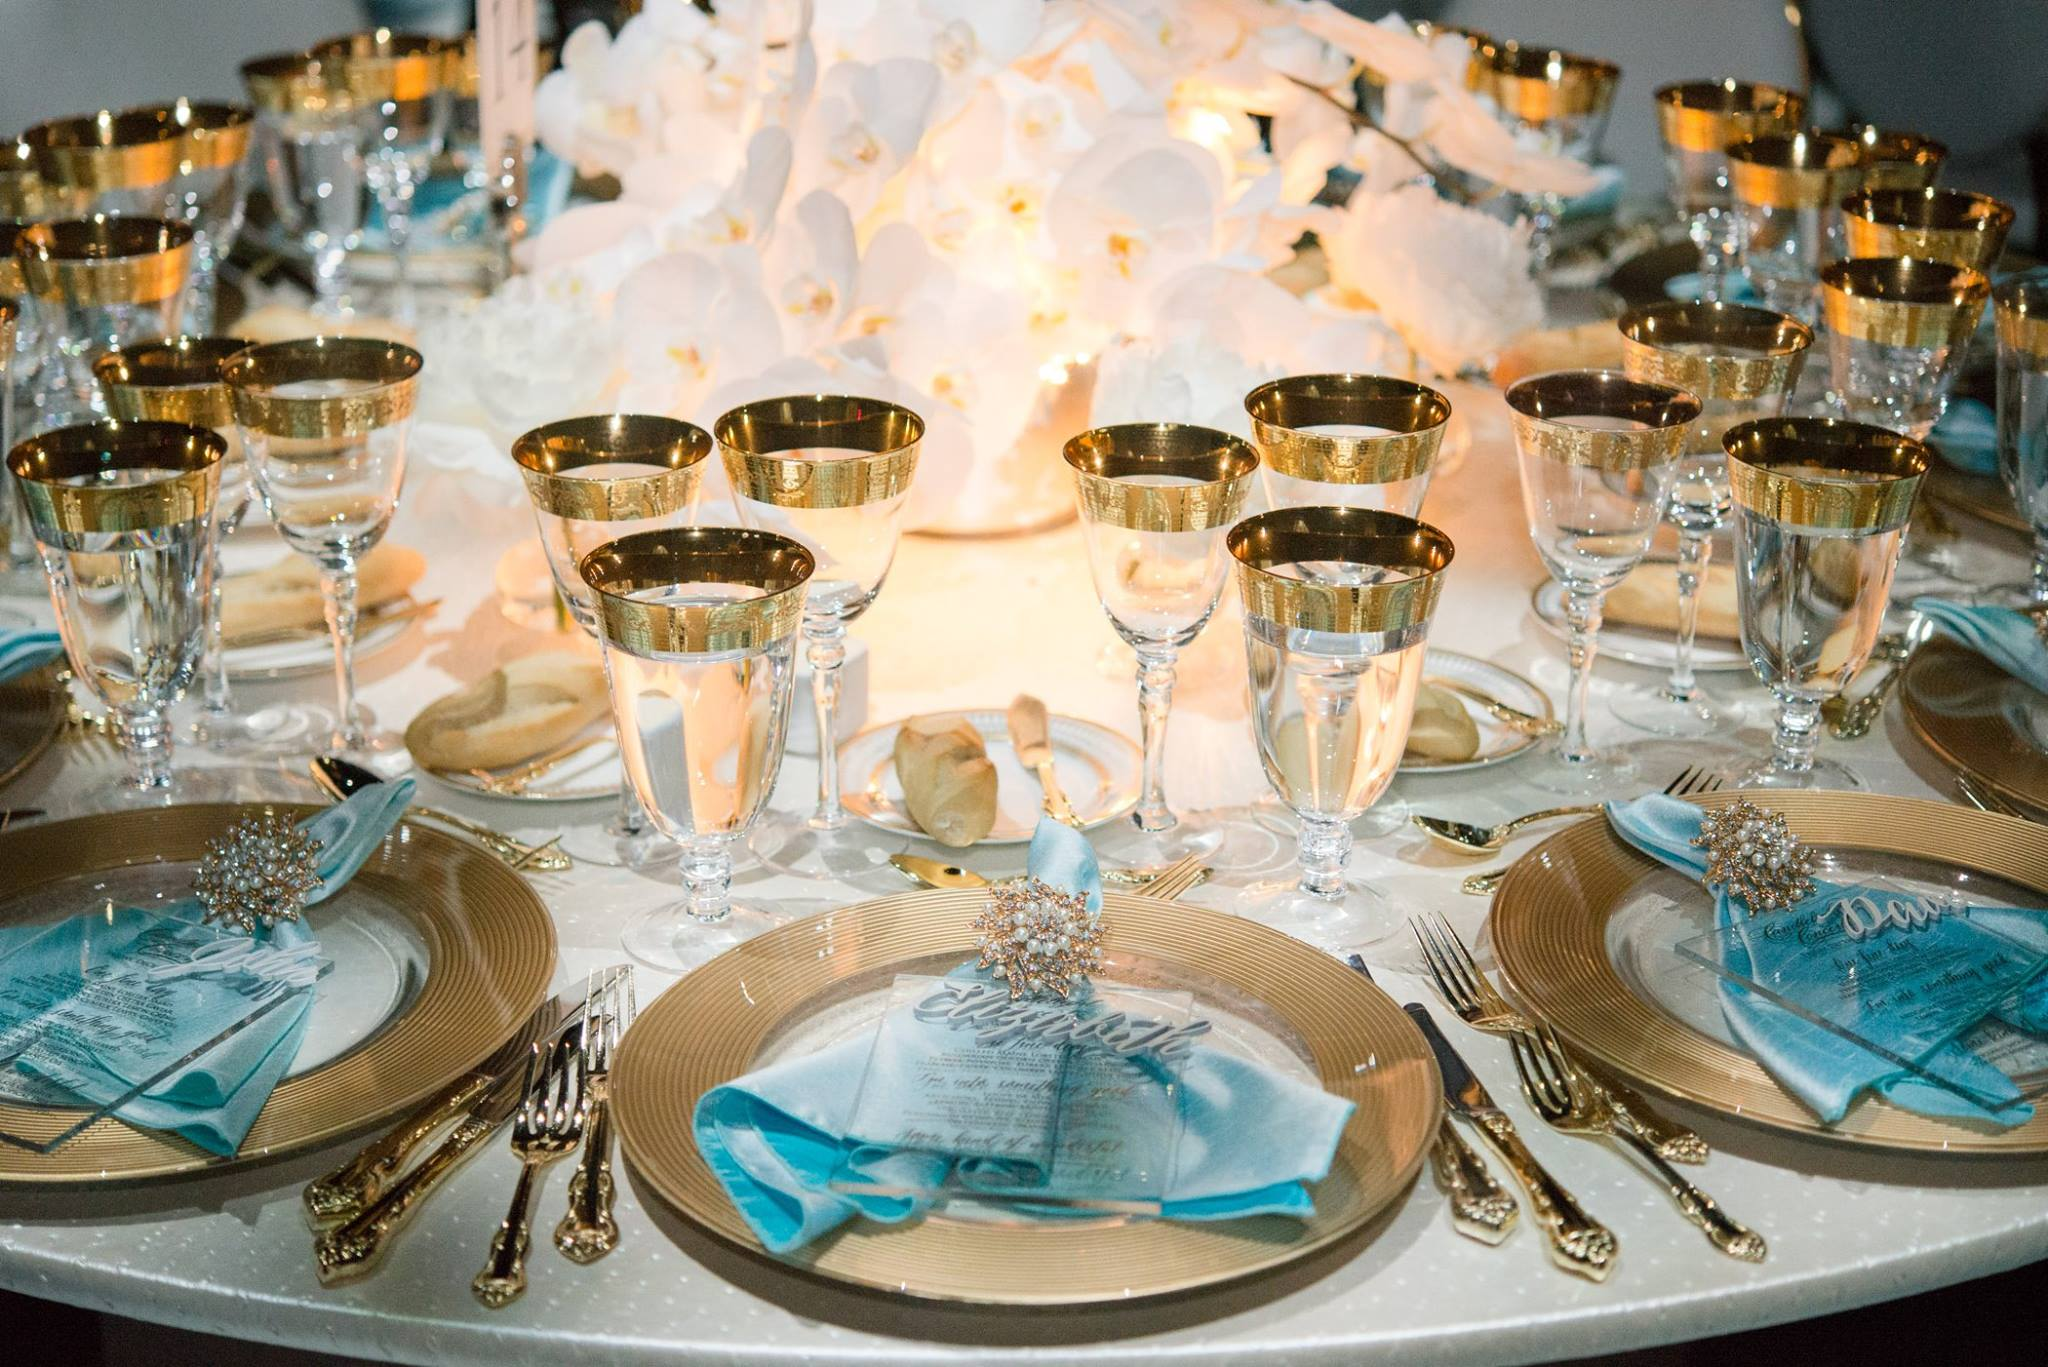 Candlelight Table Setting